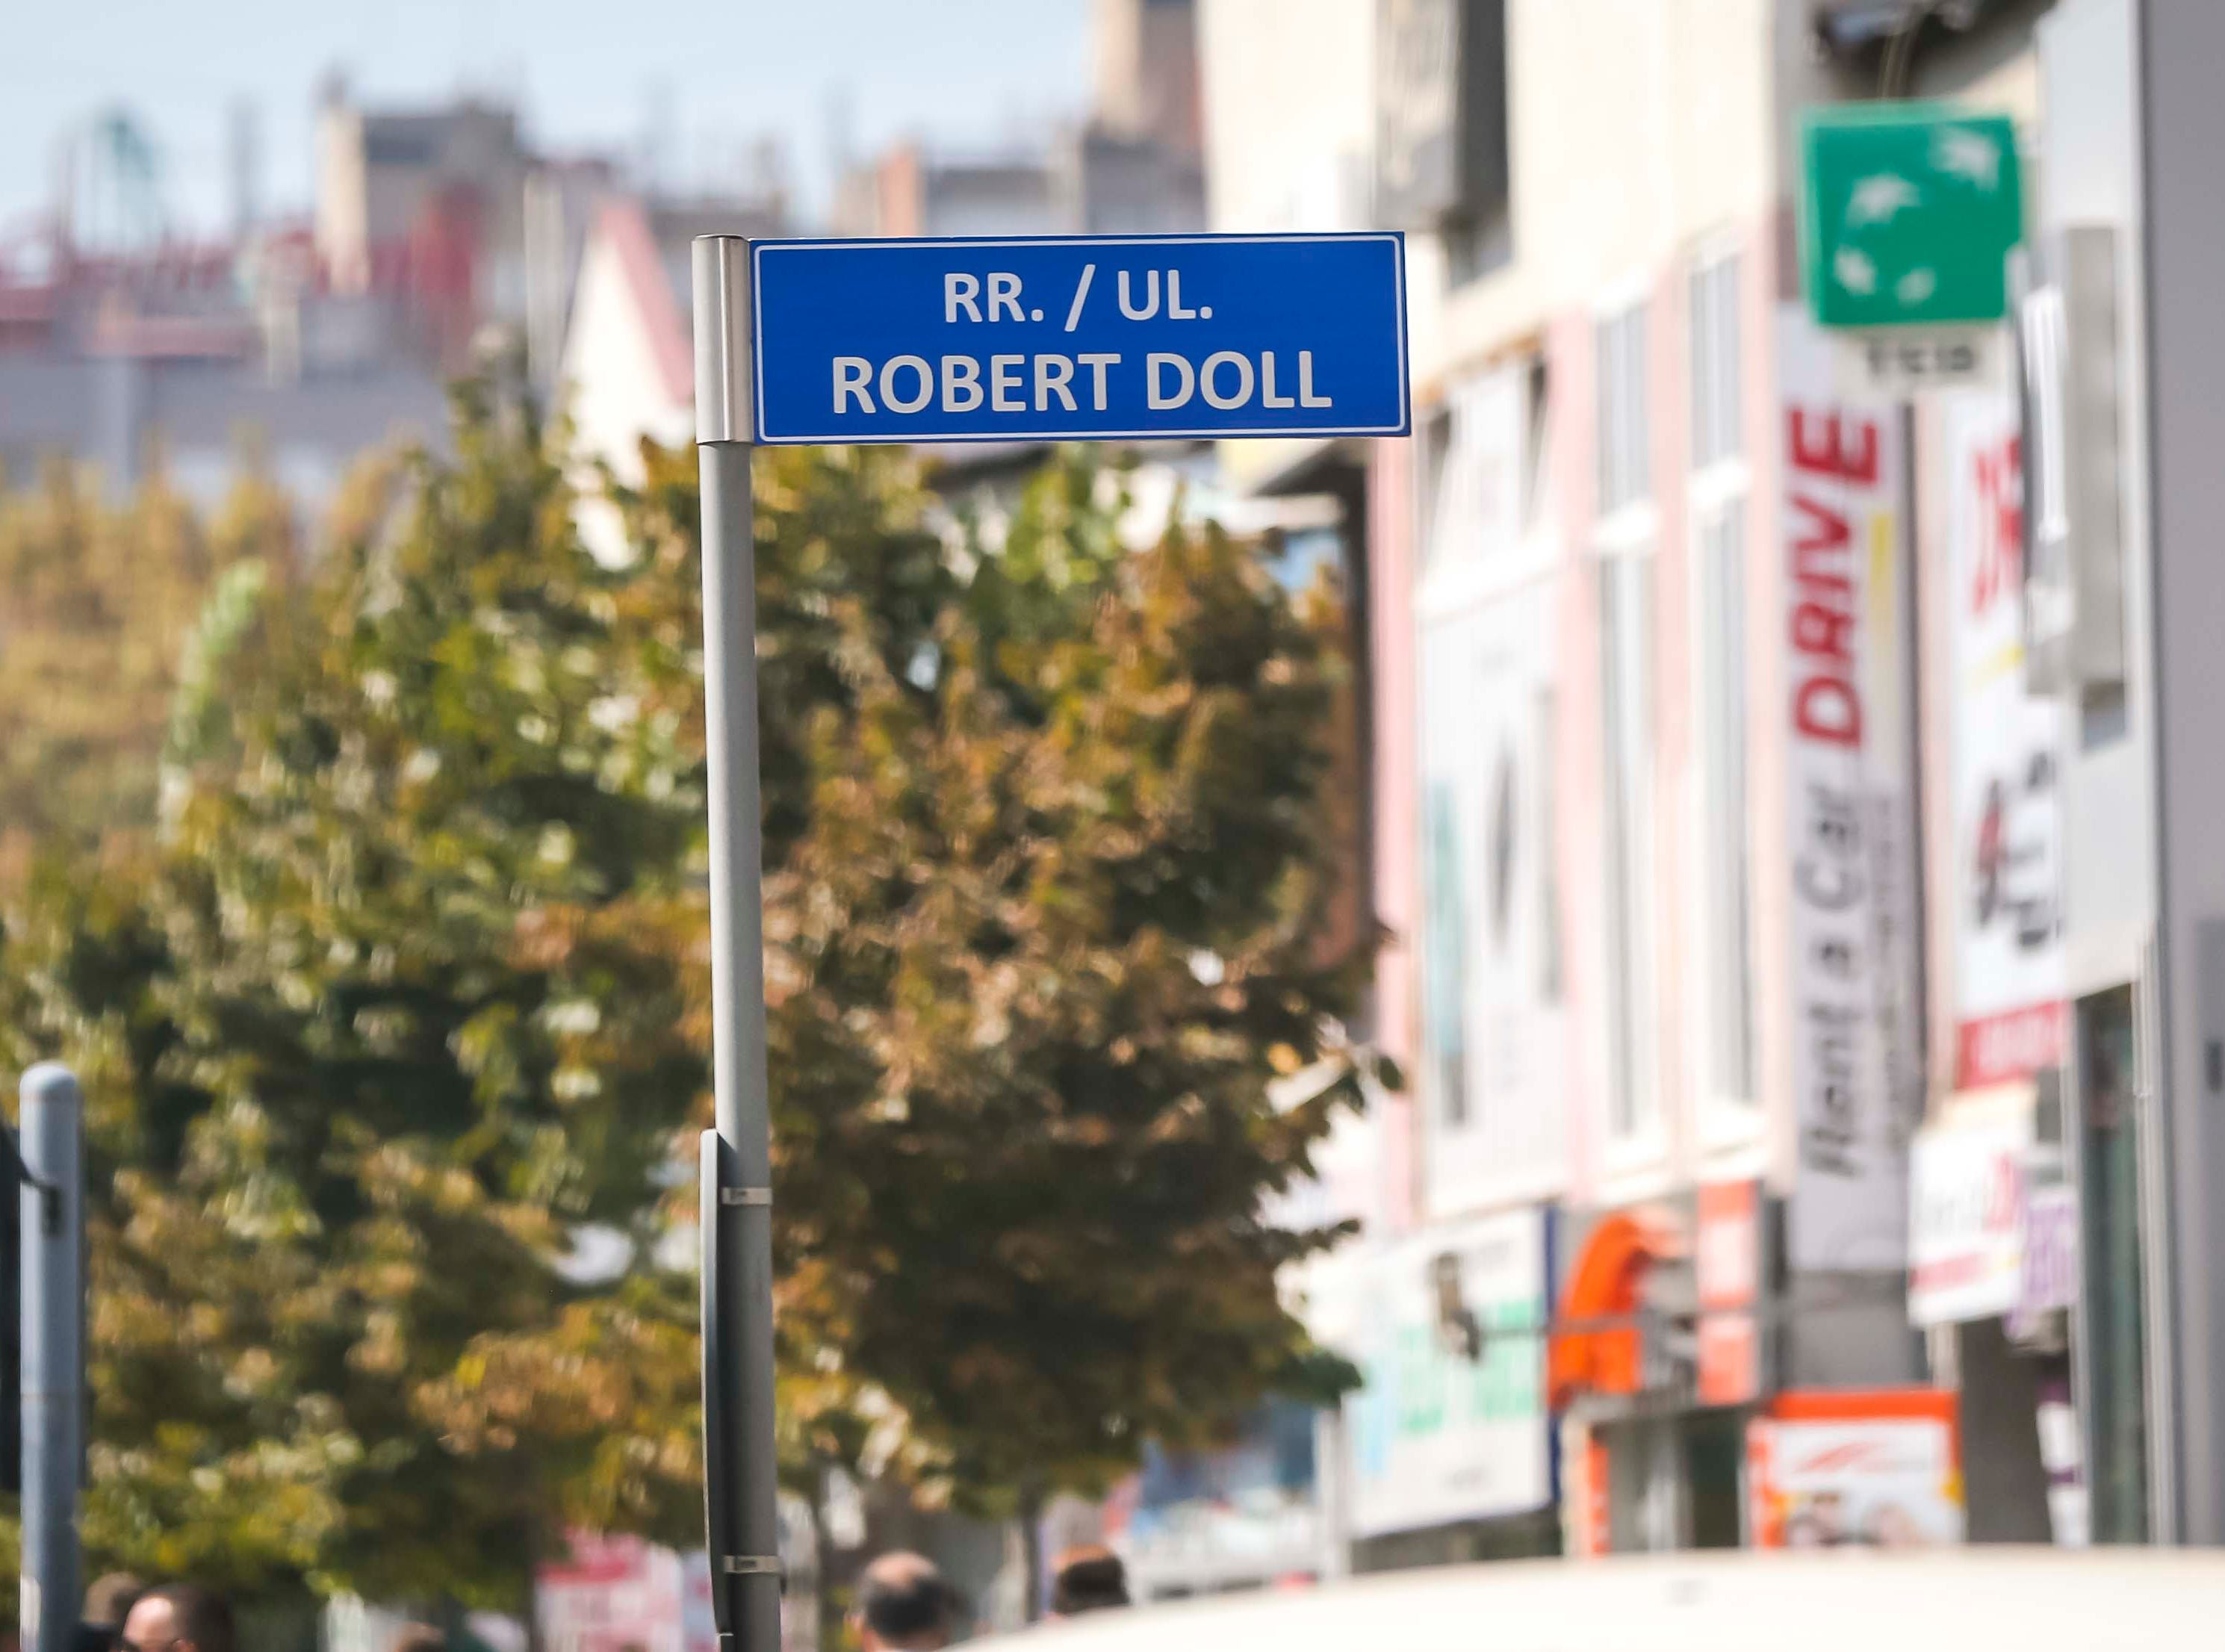 Sign for Robert (Doll) Dole Street Pristina, Kosovo, Tuesday, Sept. 18, 2018. Many streets are named for U.S. officials after NATO military involvement in the 1998-1999 conflict in the region.